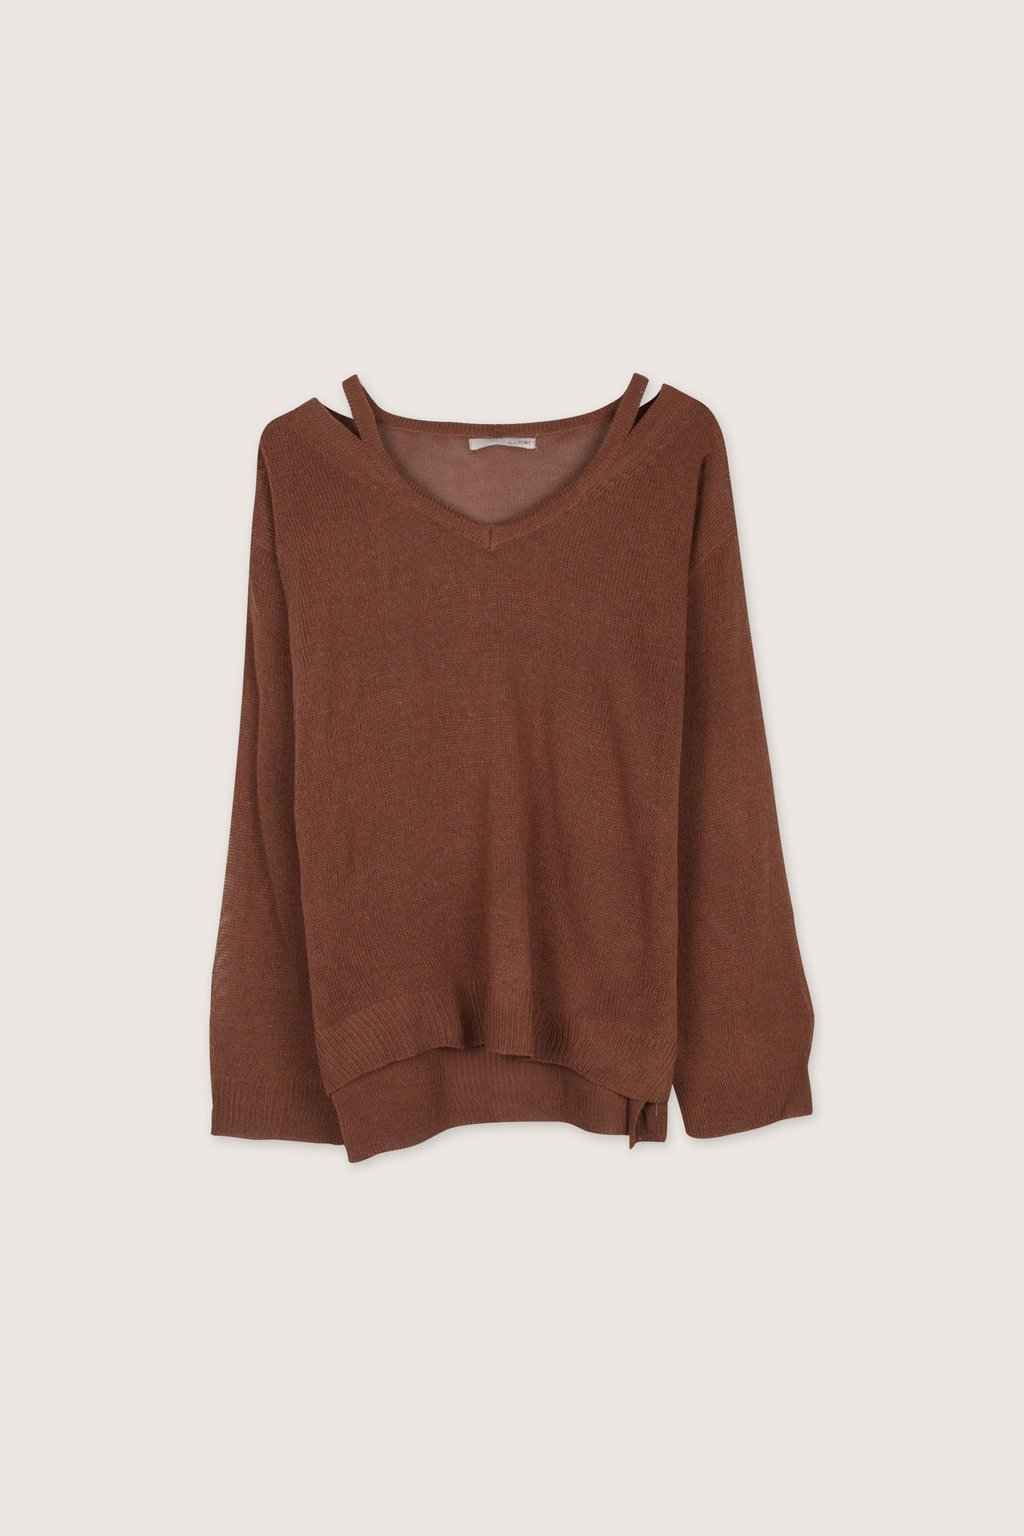 Sweater H012 Brown 5